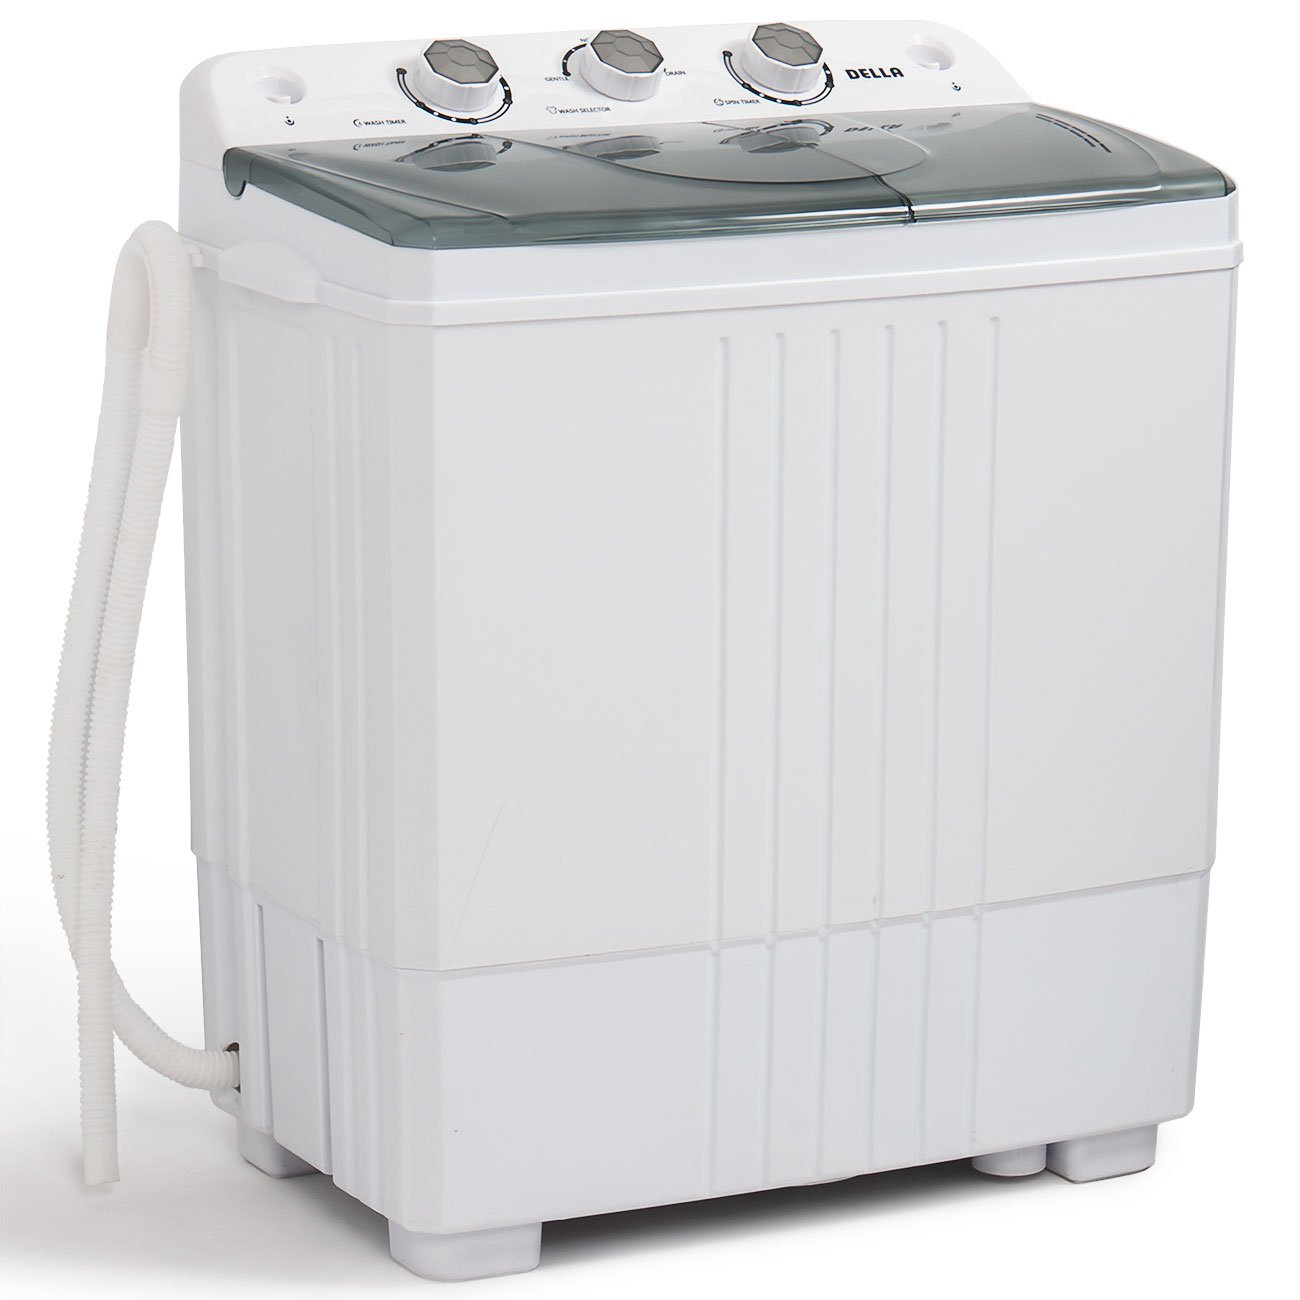 Small Apartment Washing Machine RV Washer and Dryer Portable Combo ...